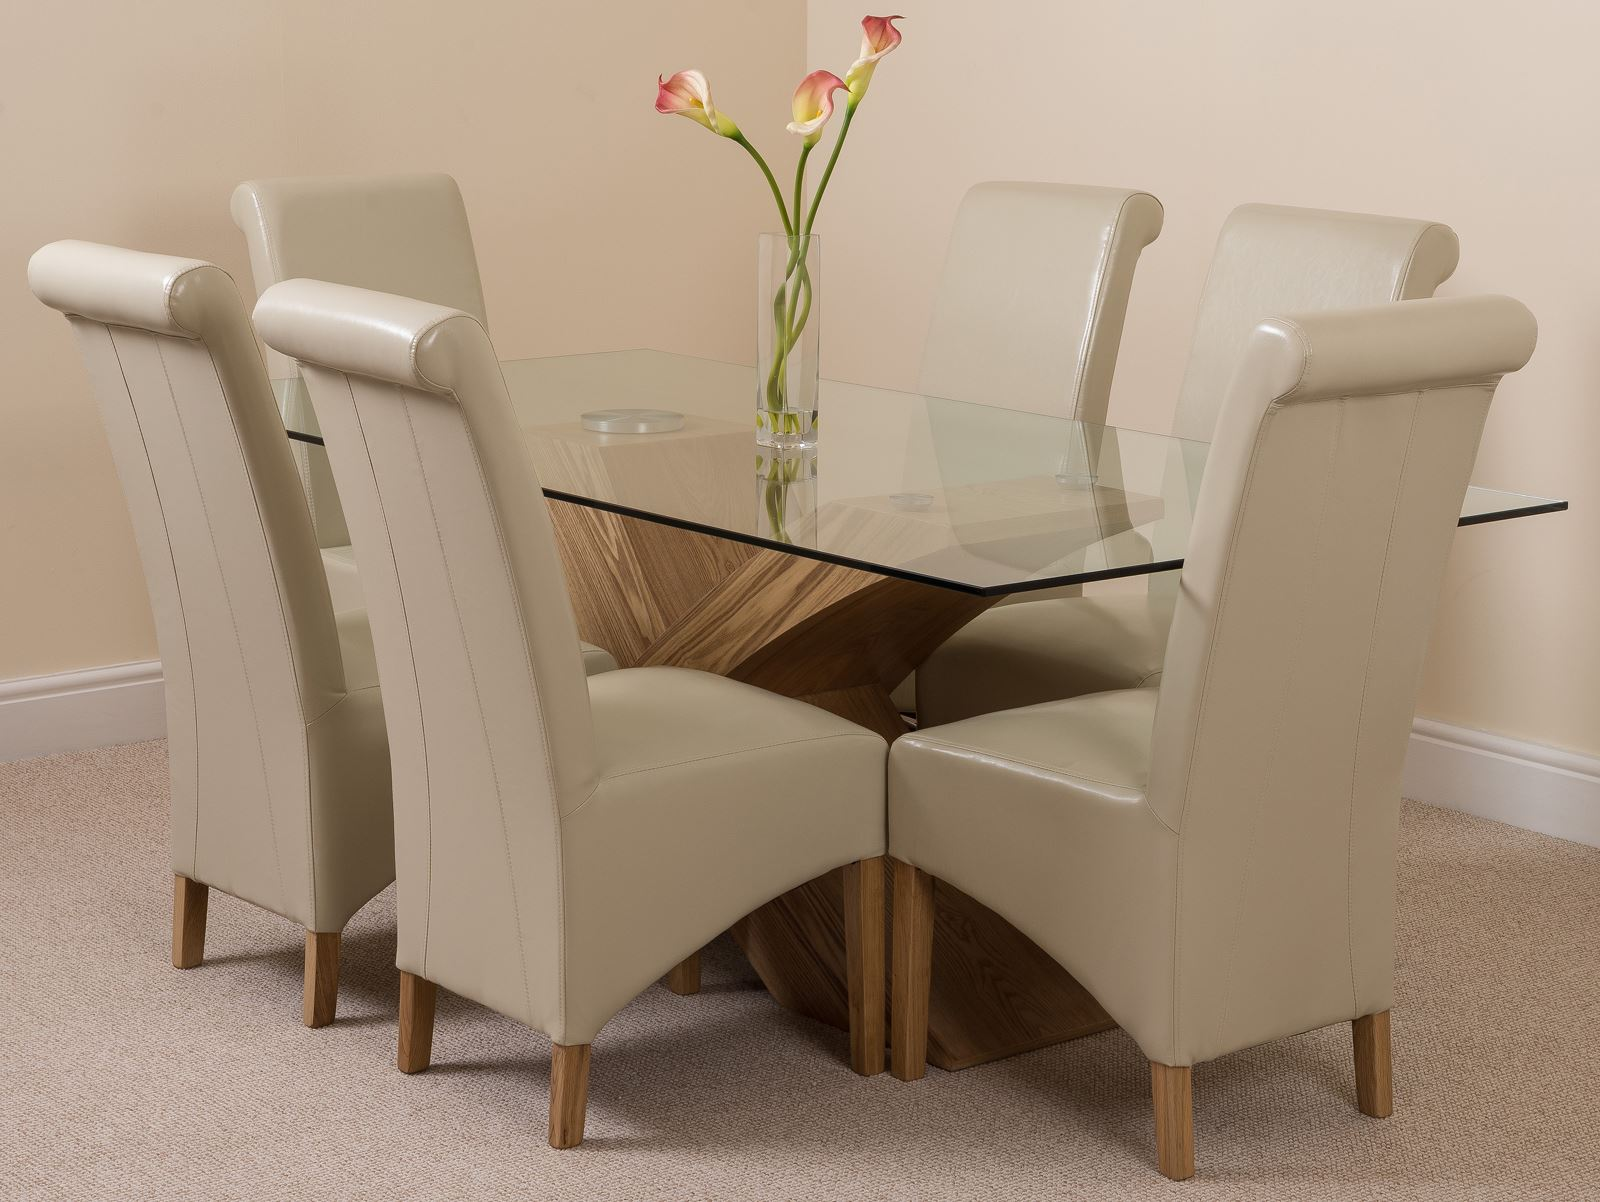 VALENCIA OAK DESIGNER MODERN GLASS DINING TABLE AND  : ebcc73d2 854d 4fc9 bb54 1a4eb0bdfc11 from www.ebay.co.uk size 1600 x 1202 jpeg 204kB